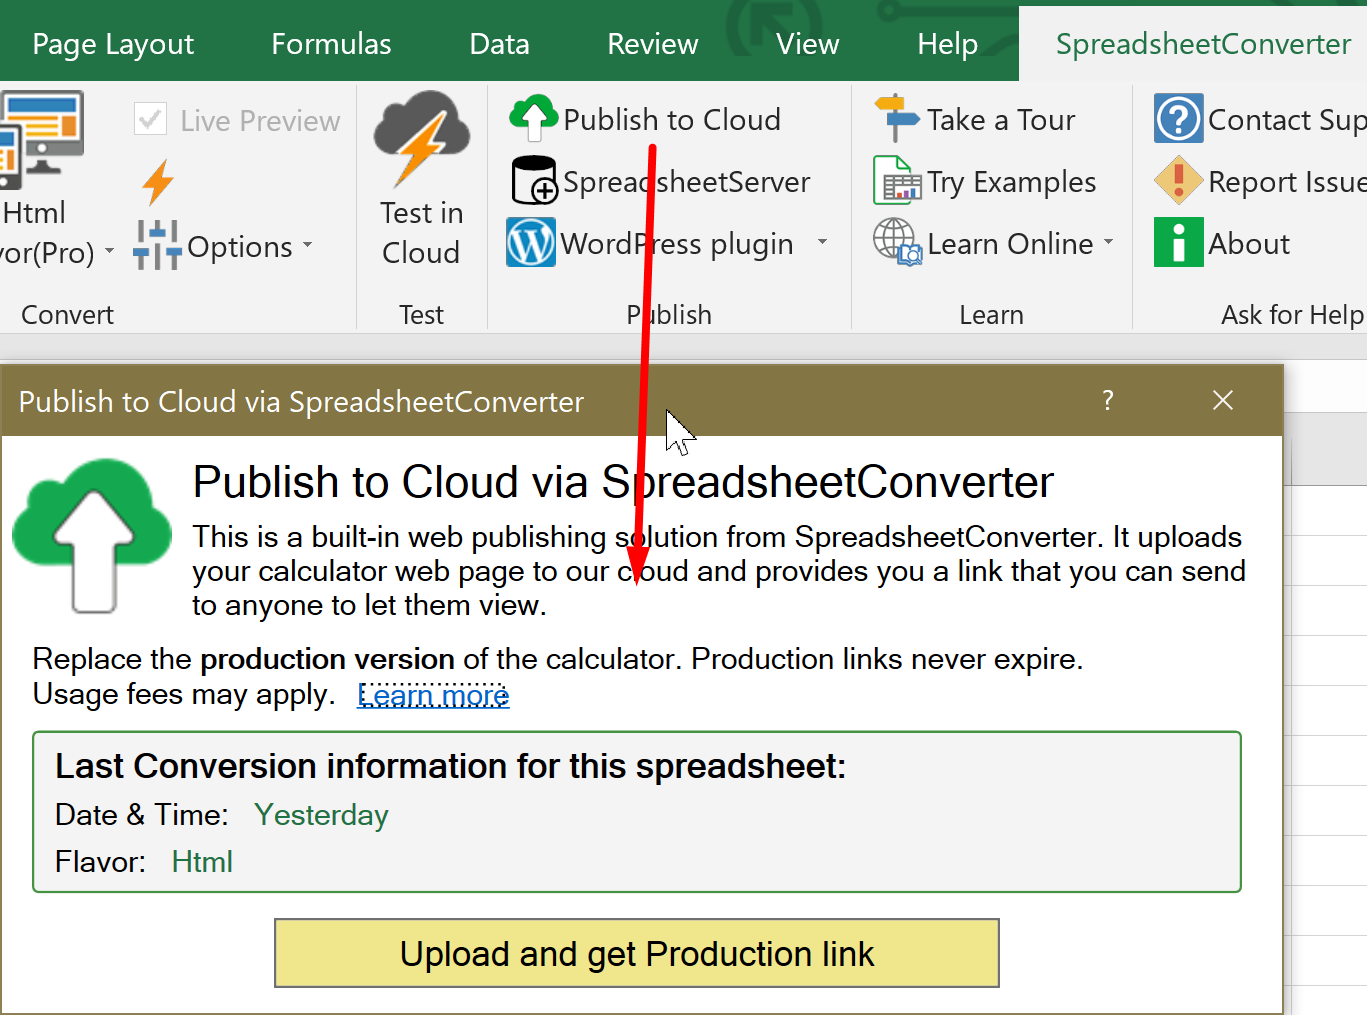 Screenshot of the Publish to Cloud menu in the ribbon